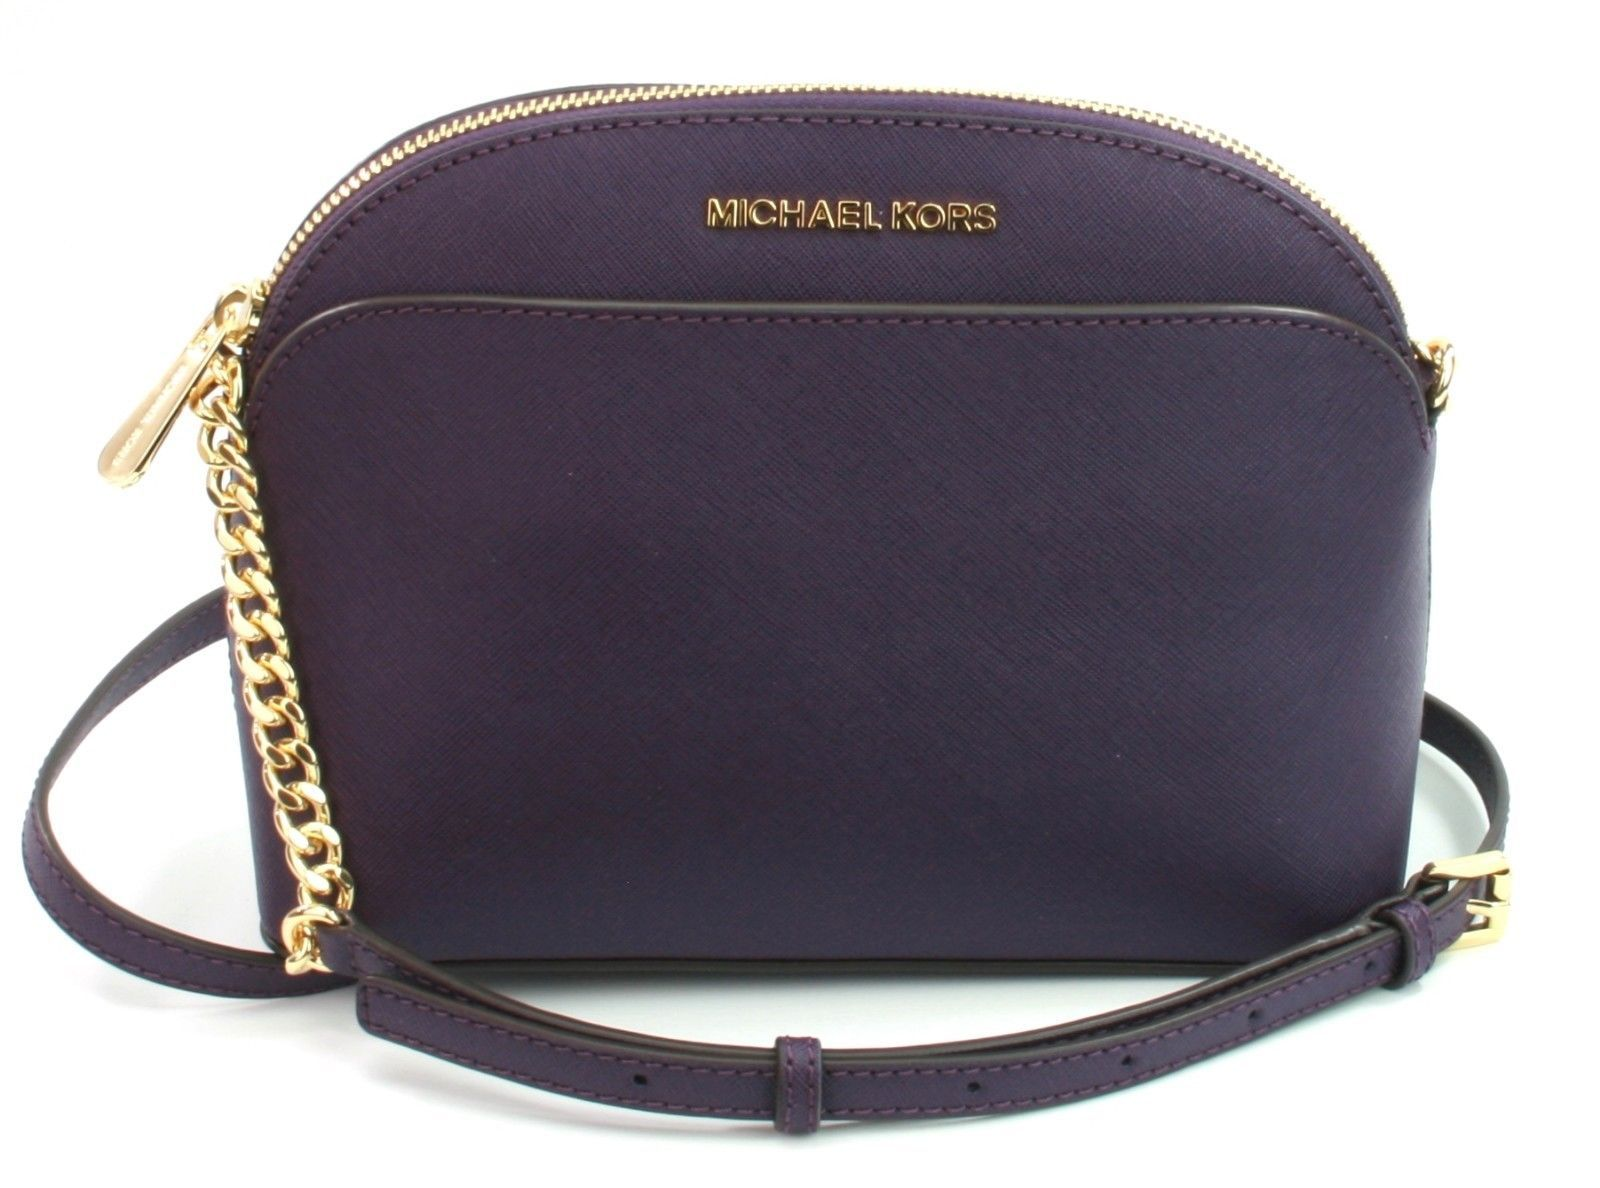 279e03db3883 Michael Kors Emmy In Pelle Viola Catena and 50 similar items. 57